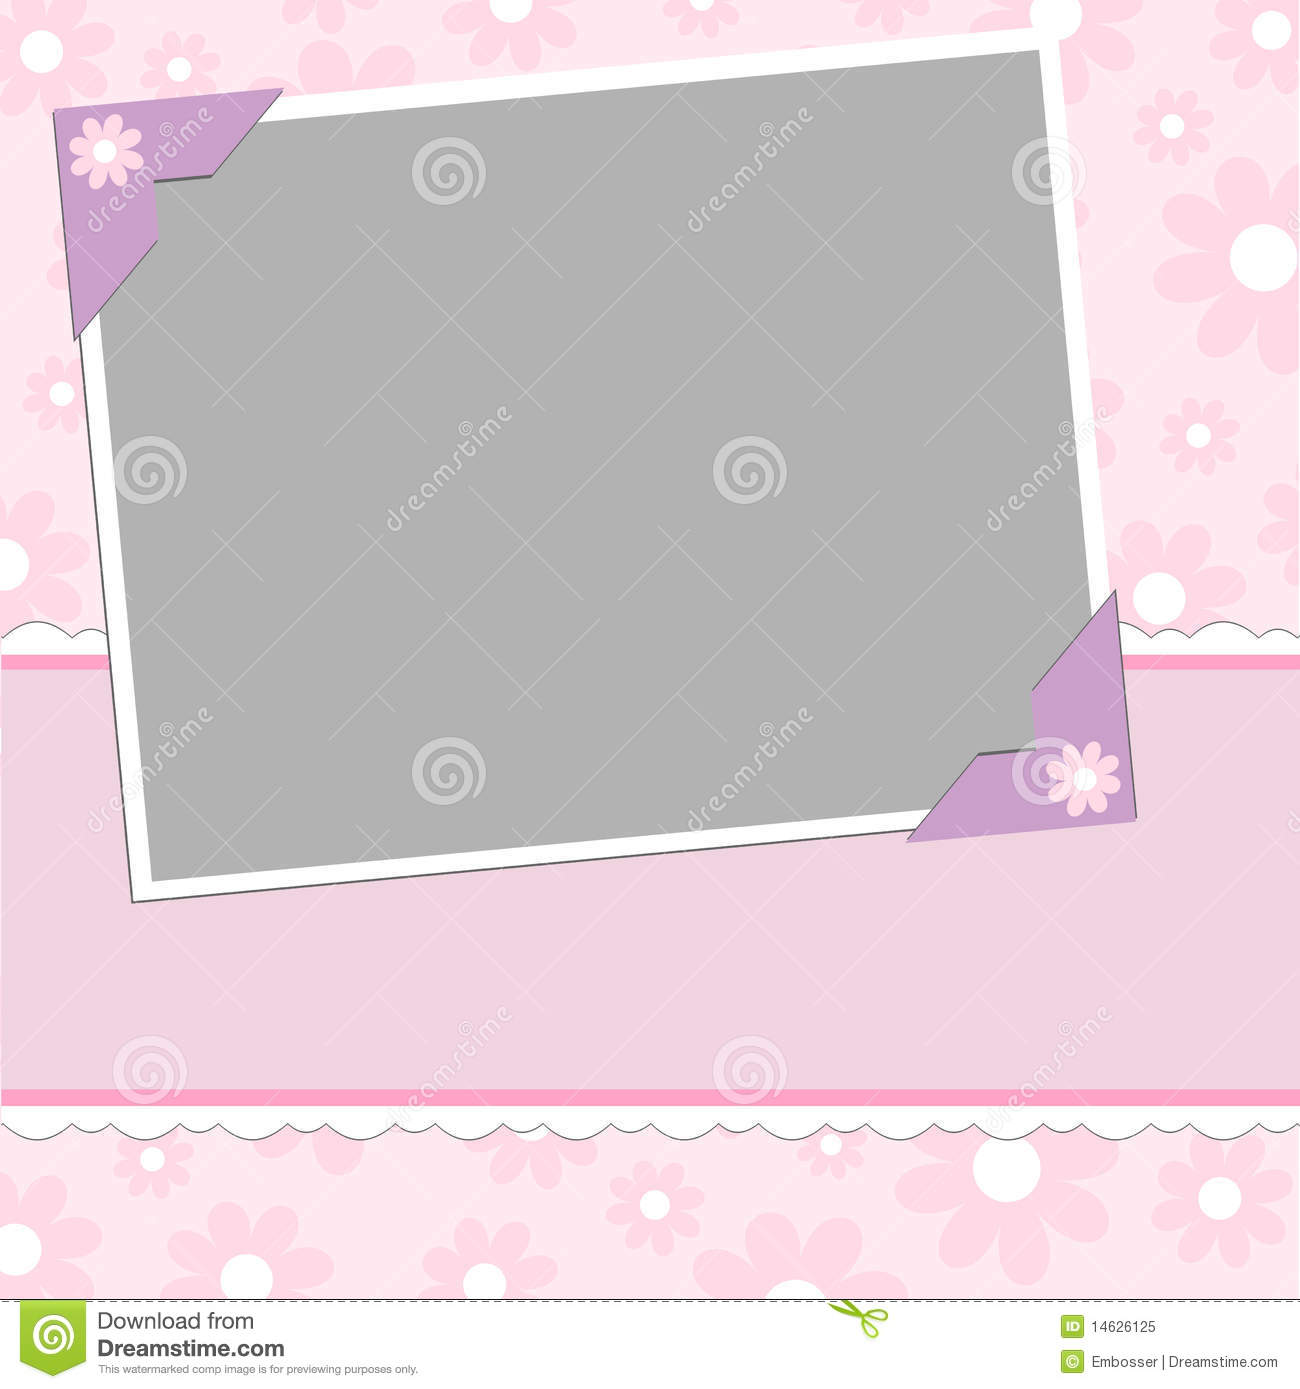 Blank Template For Greetings Card Royalty Free Stock Photo - Image ...